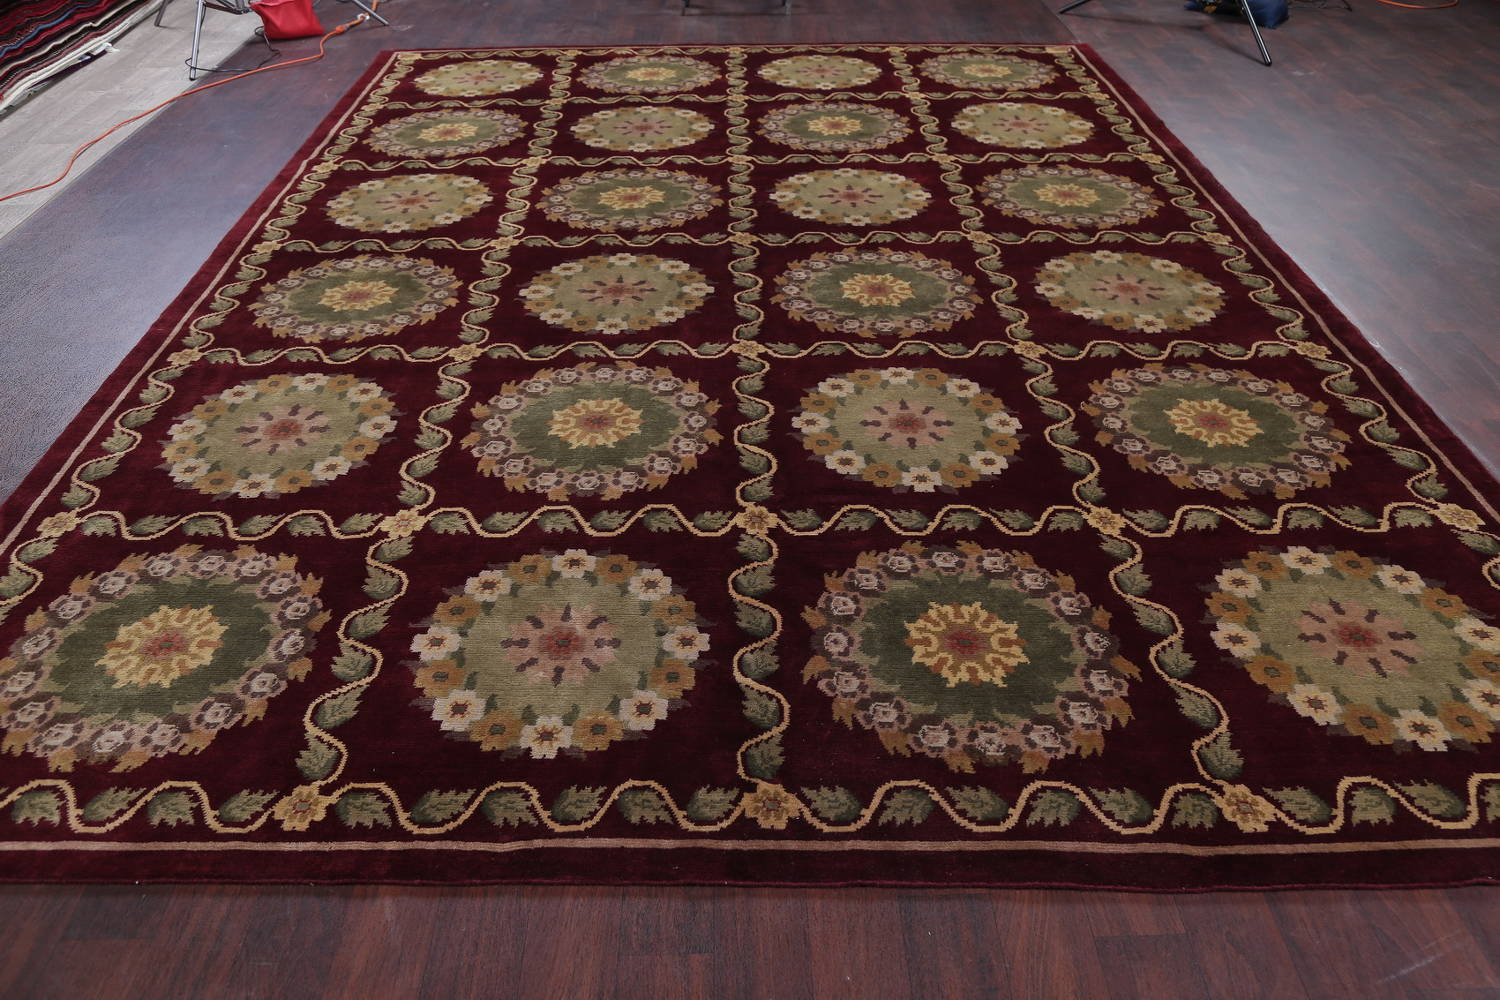 Geometric Red Aubusson Kathmando Oriental Hand-Knotted Area Rug 10x15 image 13